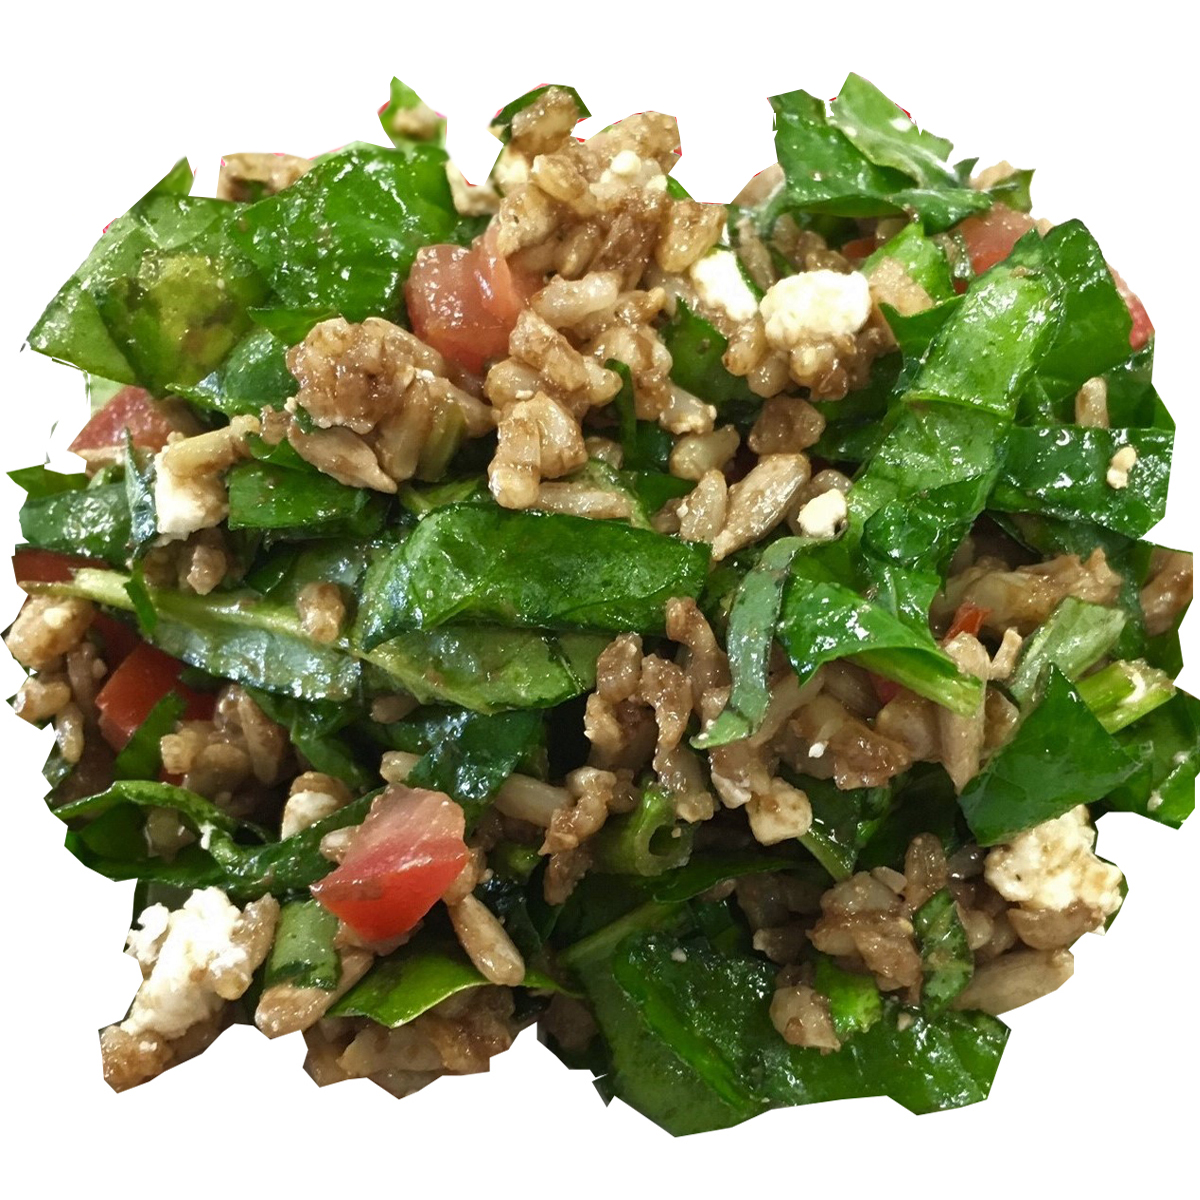 Brown Rice with Fresh Spinach and Basil - Gluten free brown rice tossed with fresh organic spinach and basil, chopped heirloom tomatoes, sunflower seeds and feta cheese. During summer season we add fresh strawberries and in Fall Winter we add more herbs and greens.Dressing: enfuso strawberry balsamic vinegar and basil olive oilCalories per serving: 170Price/lb: $9.00